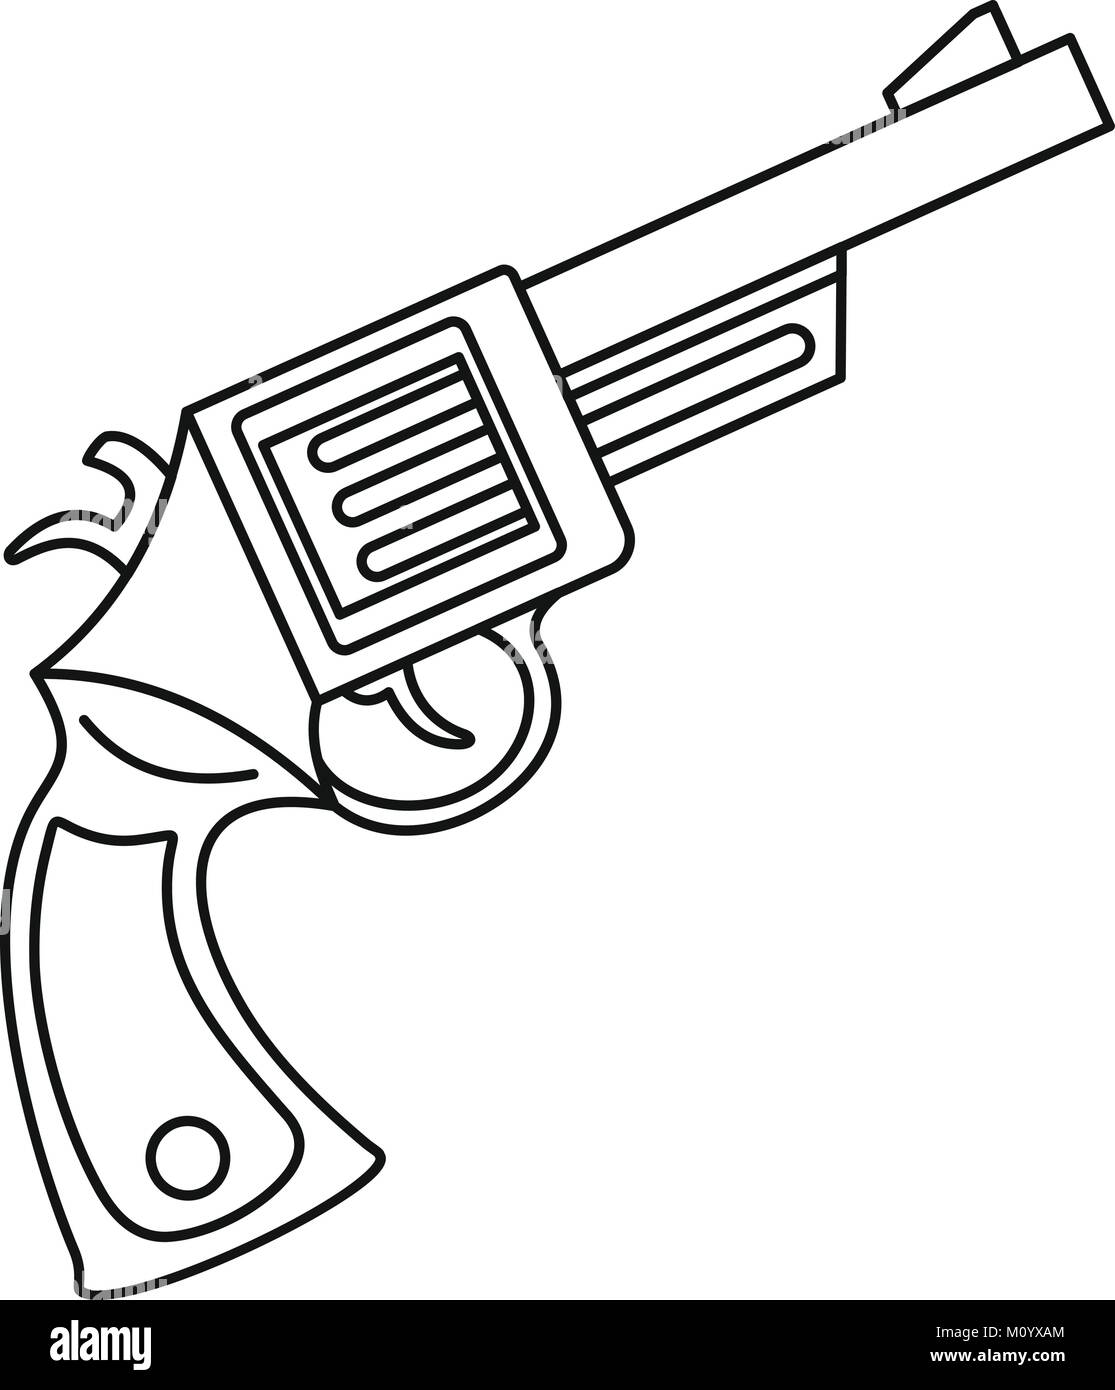 ammunition black and white stock photos images page 3 alamy 18th Century Destroyer vintage revolver icon outline style stock image